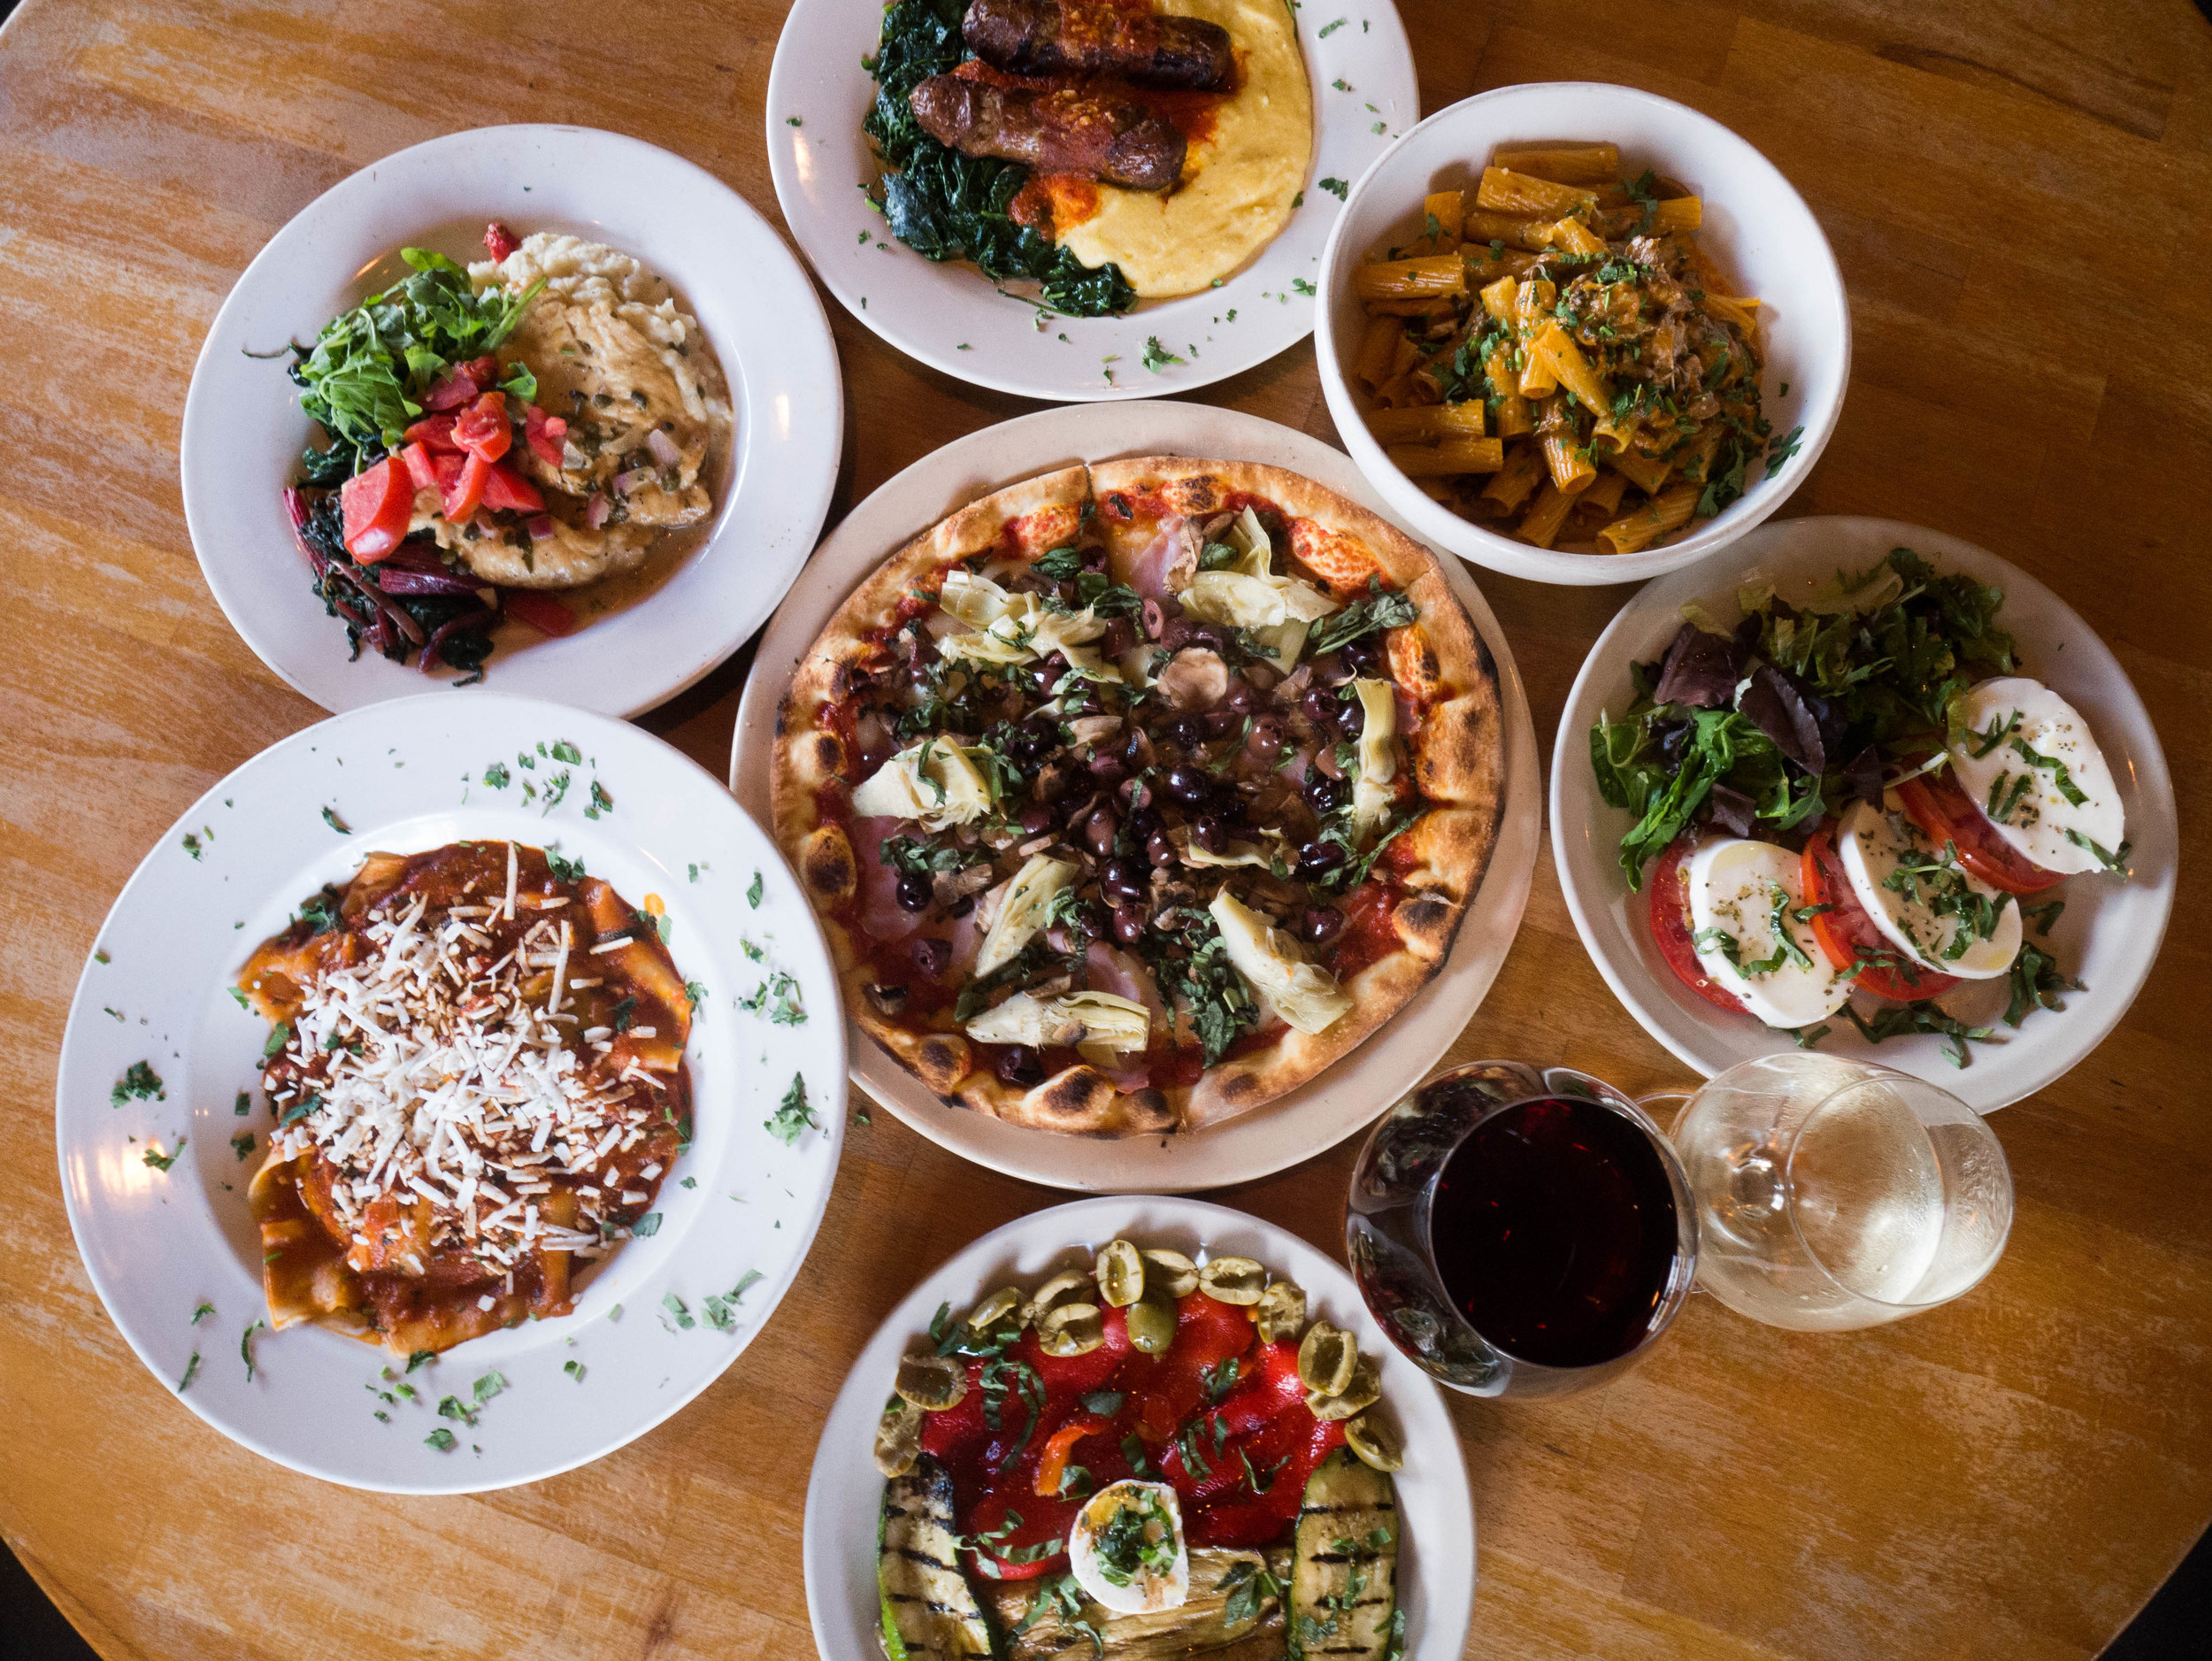 Plates of assorted Italian dishes including pizza, pasta, and salad